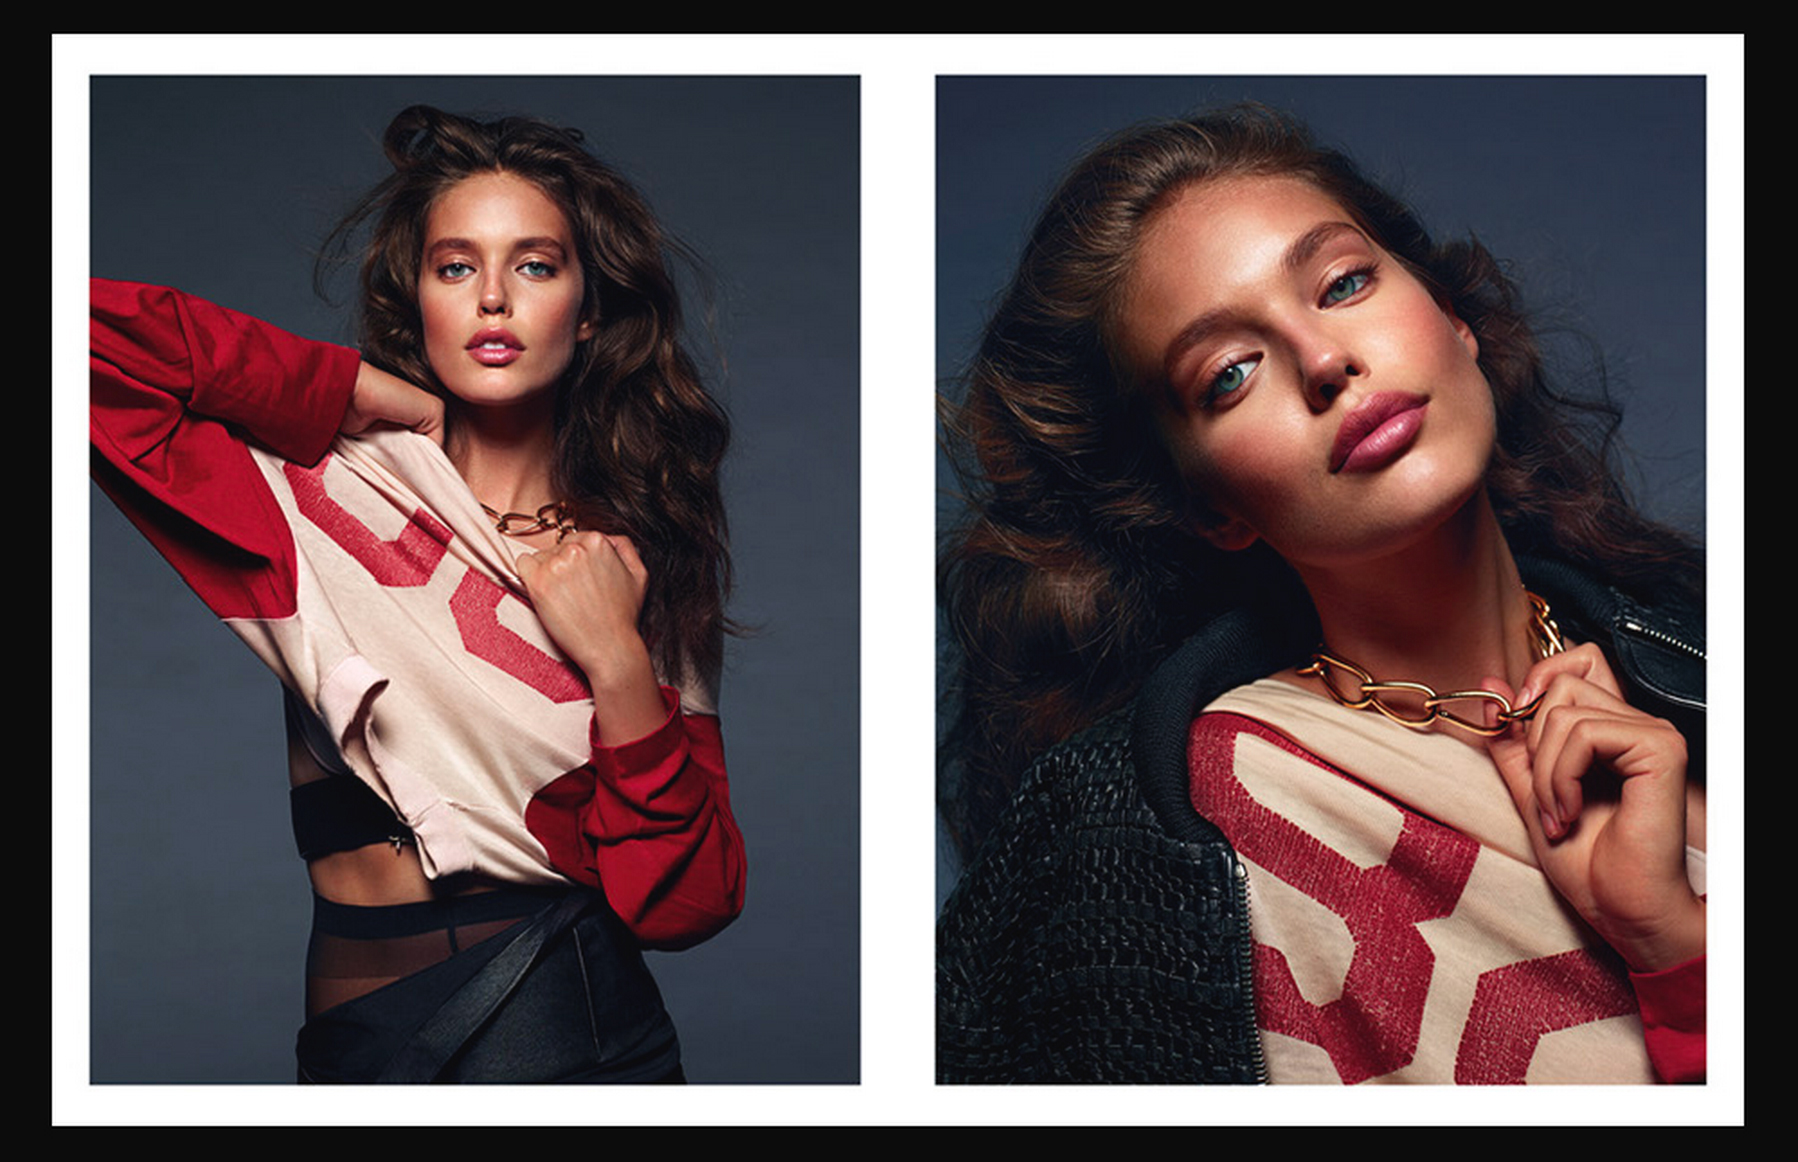 Emily DiDonato for Intermission Magazine